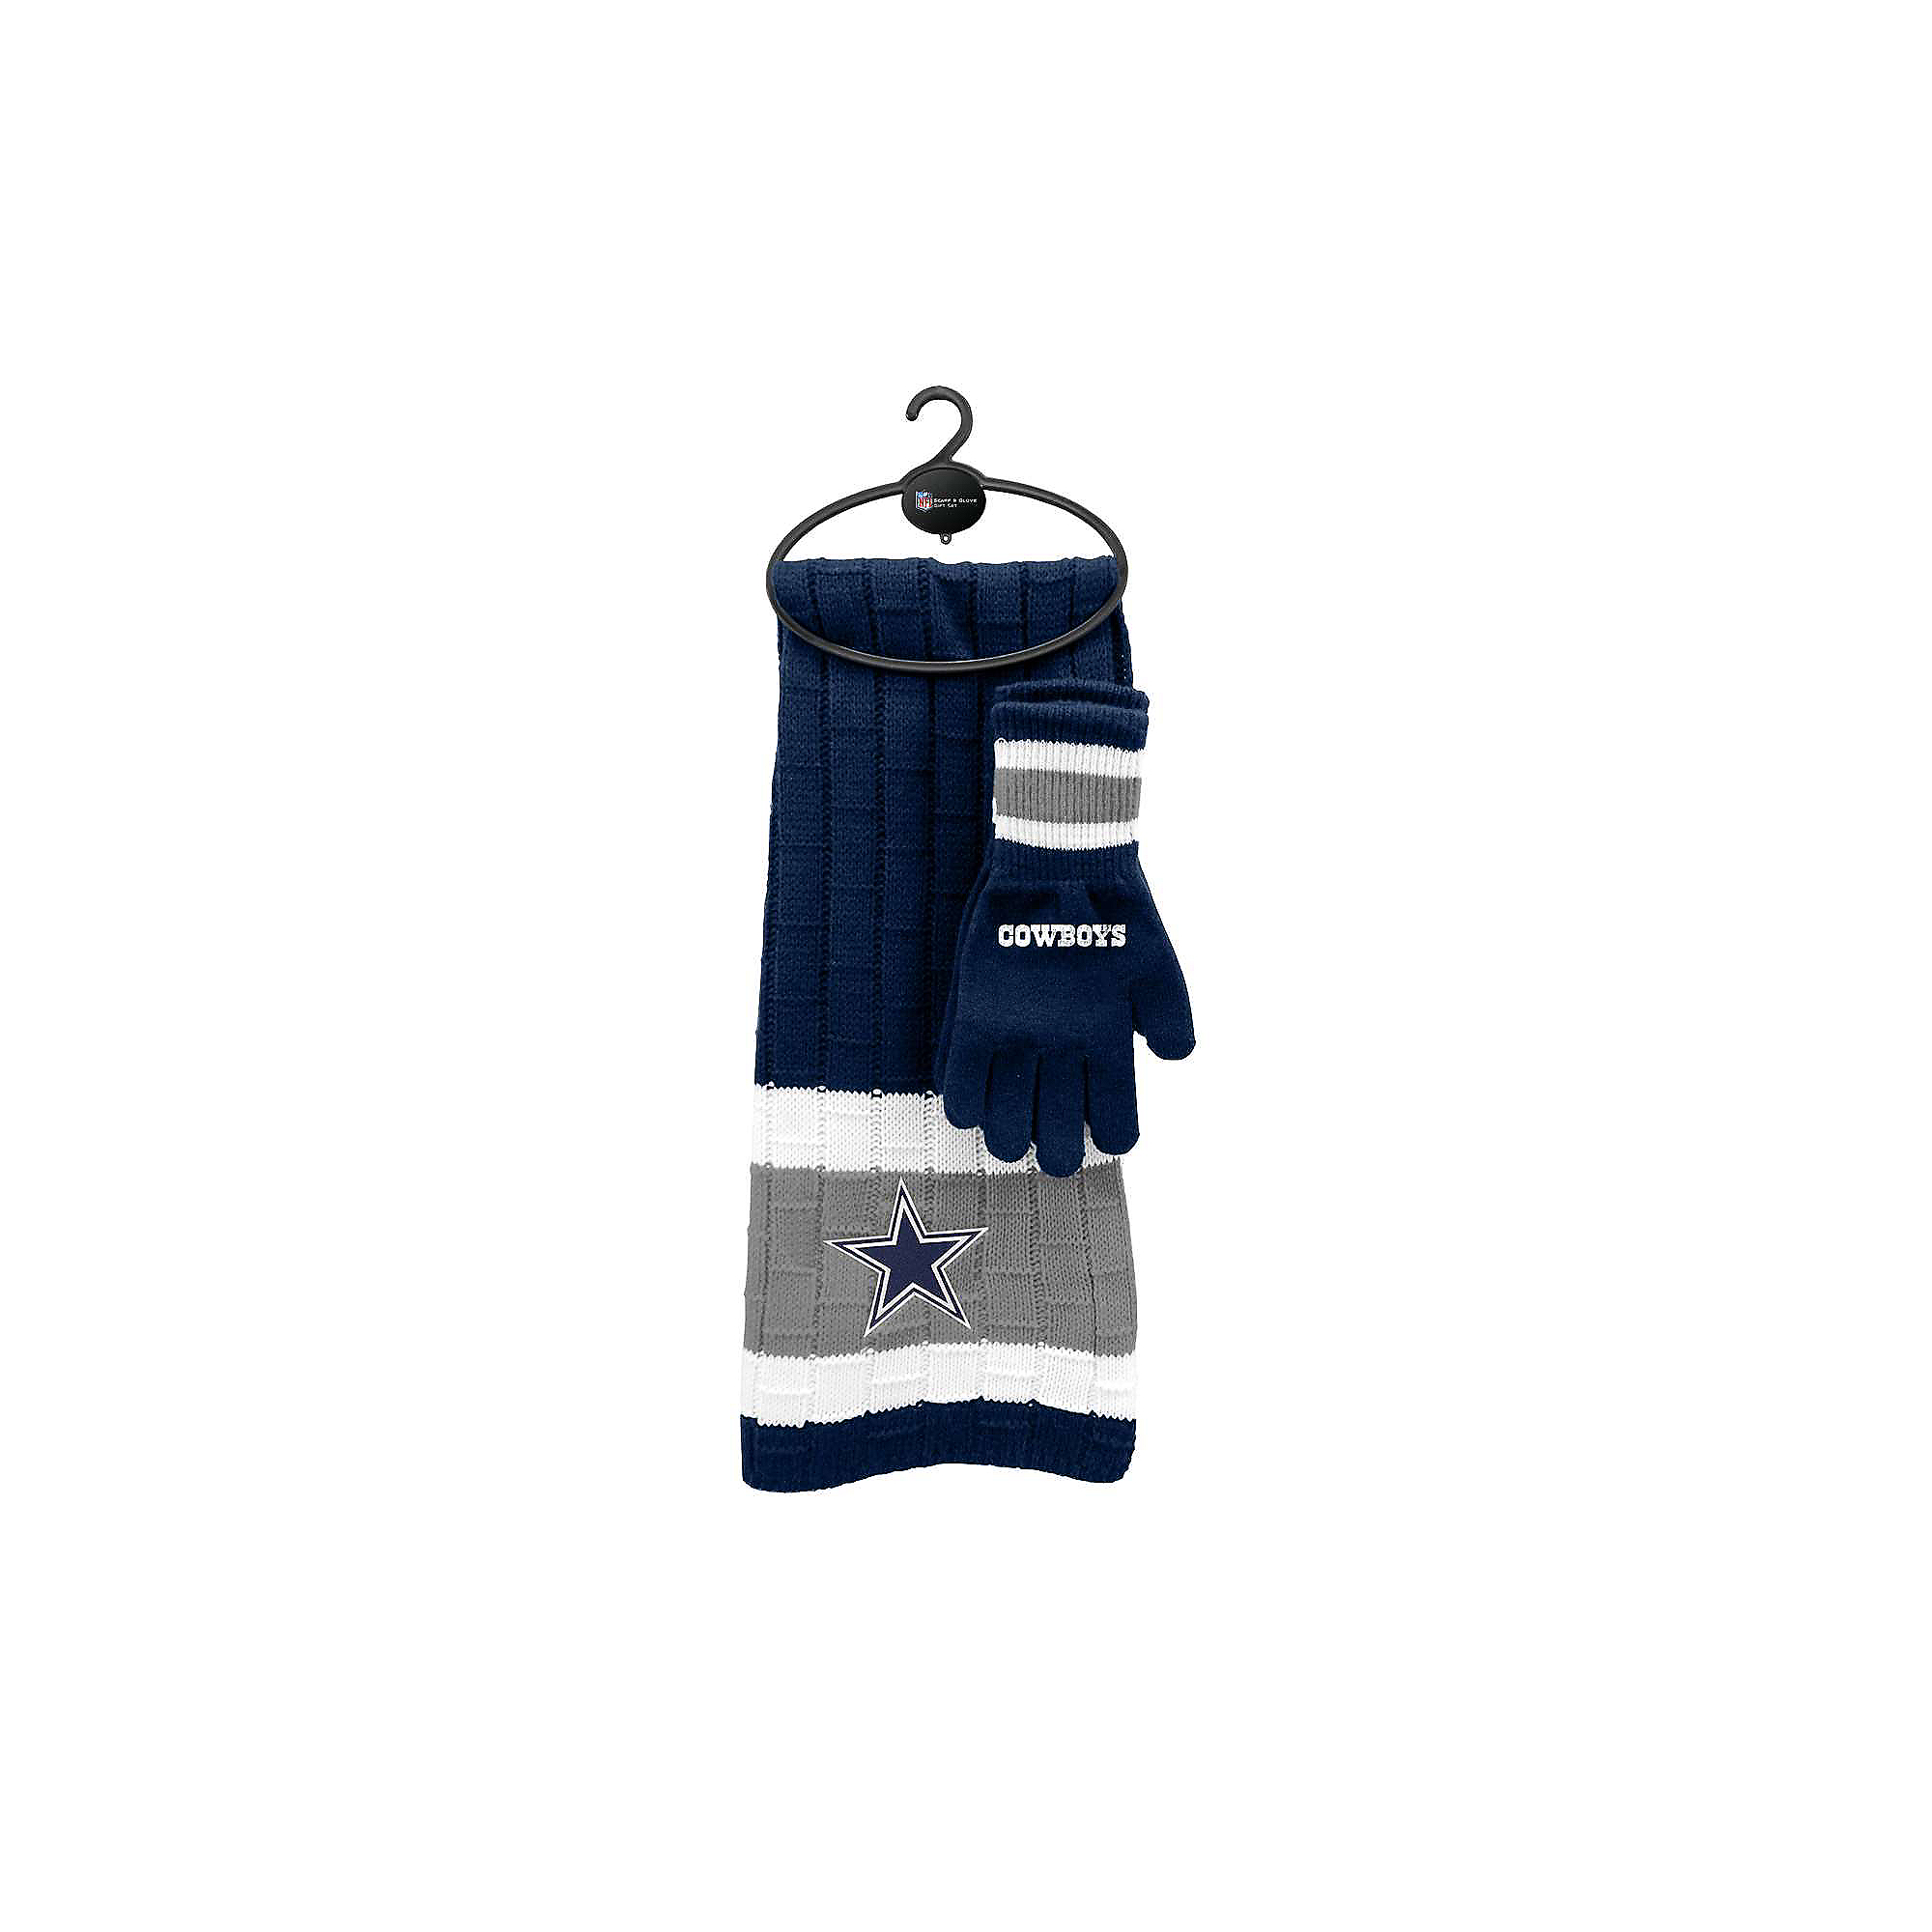 Dallas Cowboys Scarf Glove Gift Set